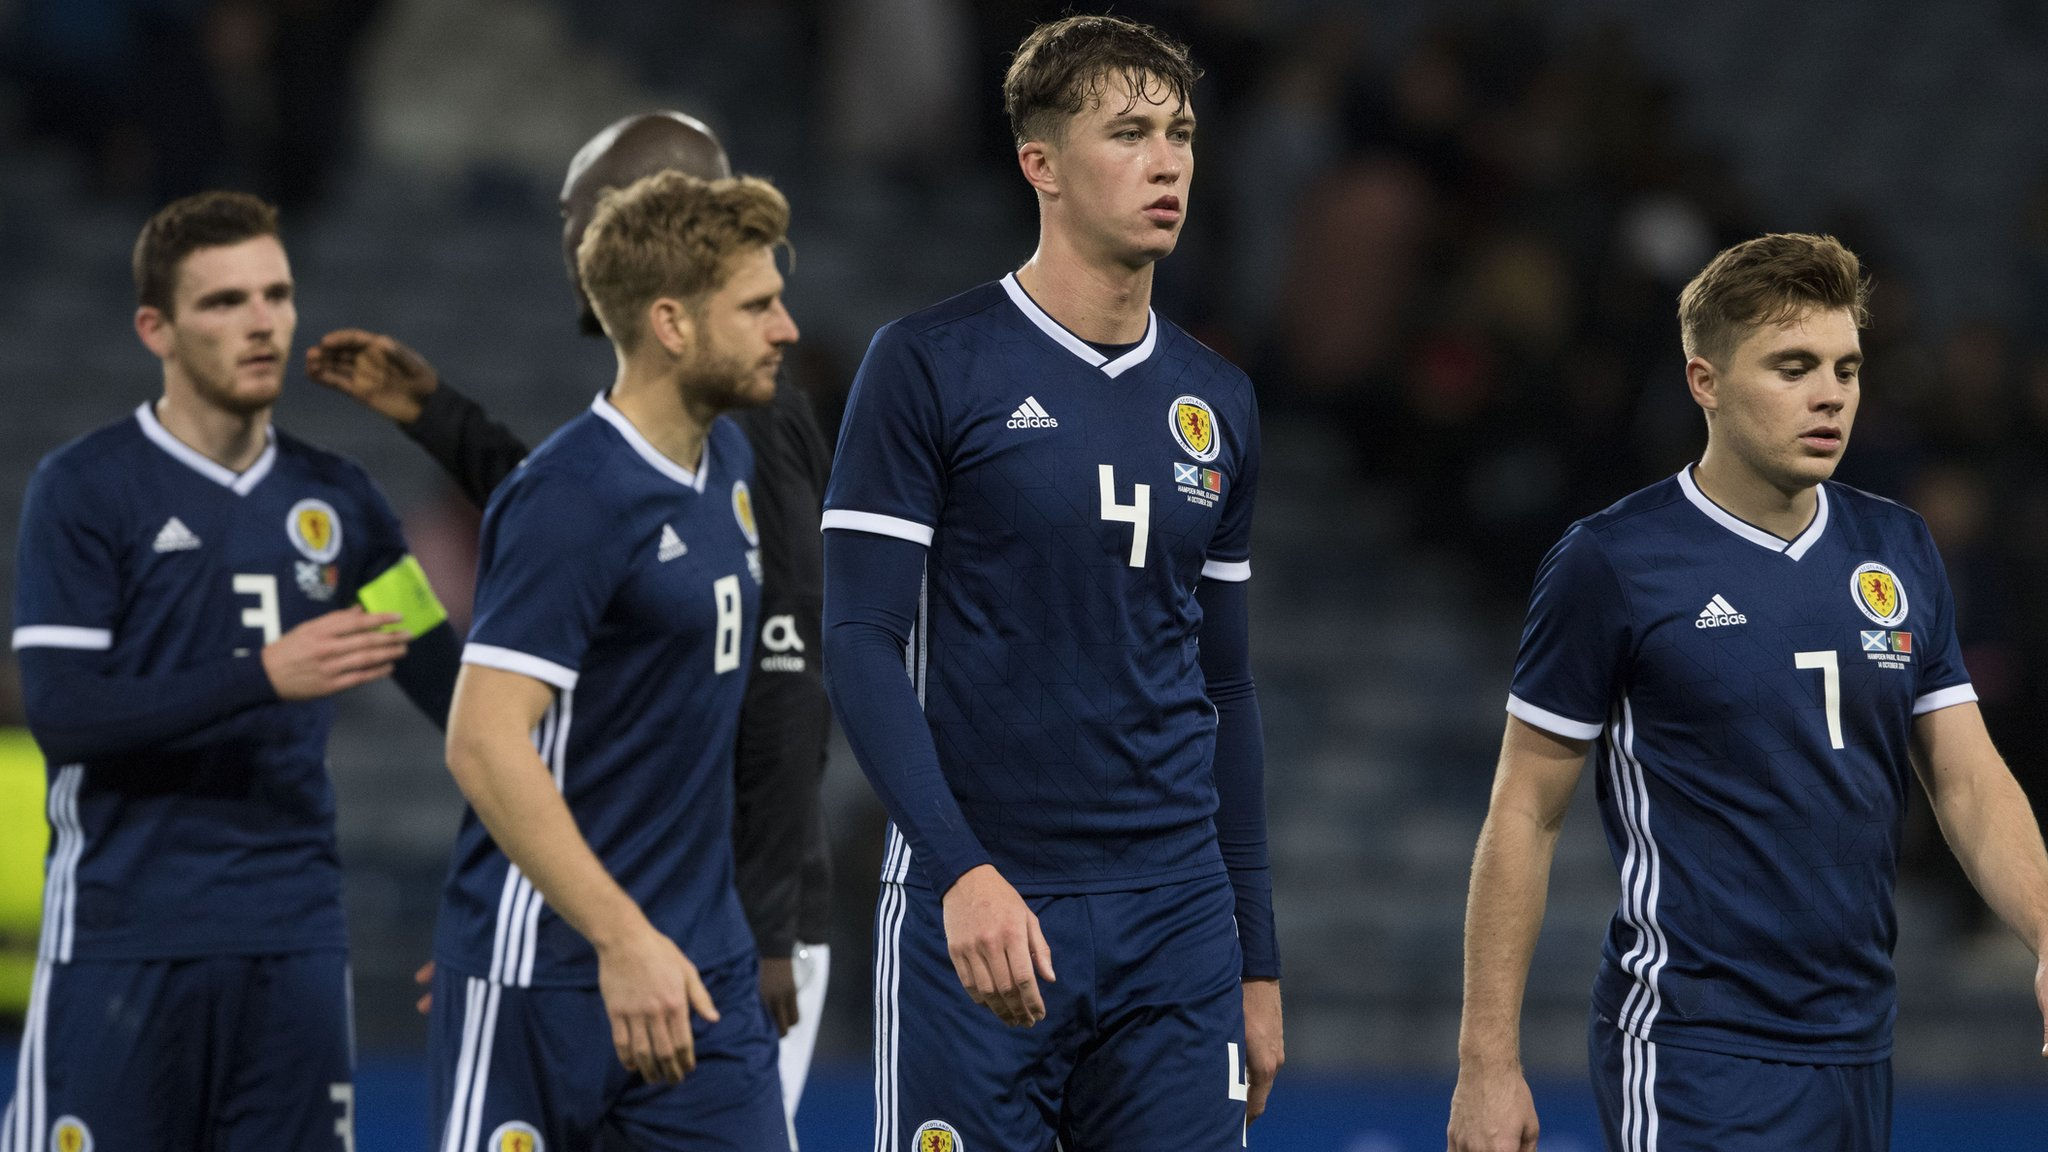 Euro 2020 qualifiers the 'bigger picture' for Scotland